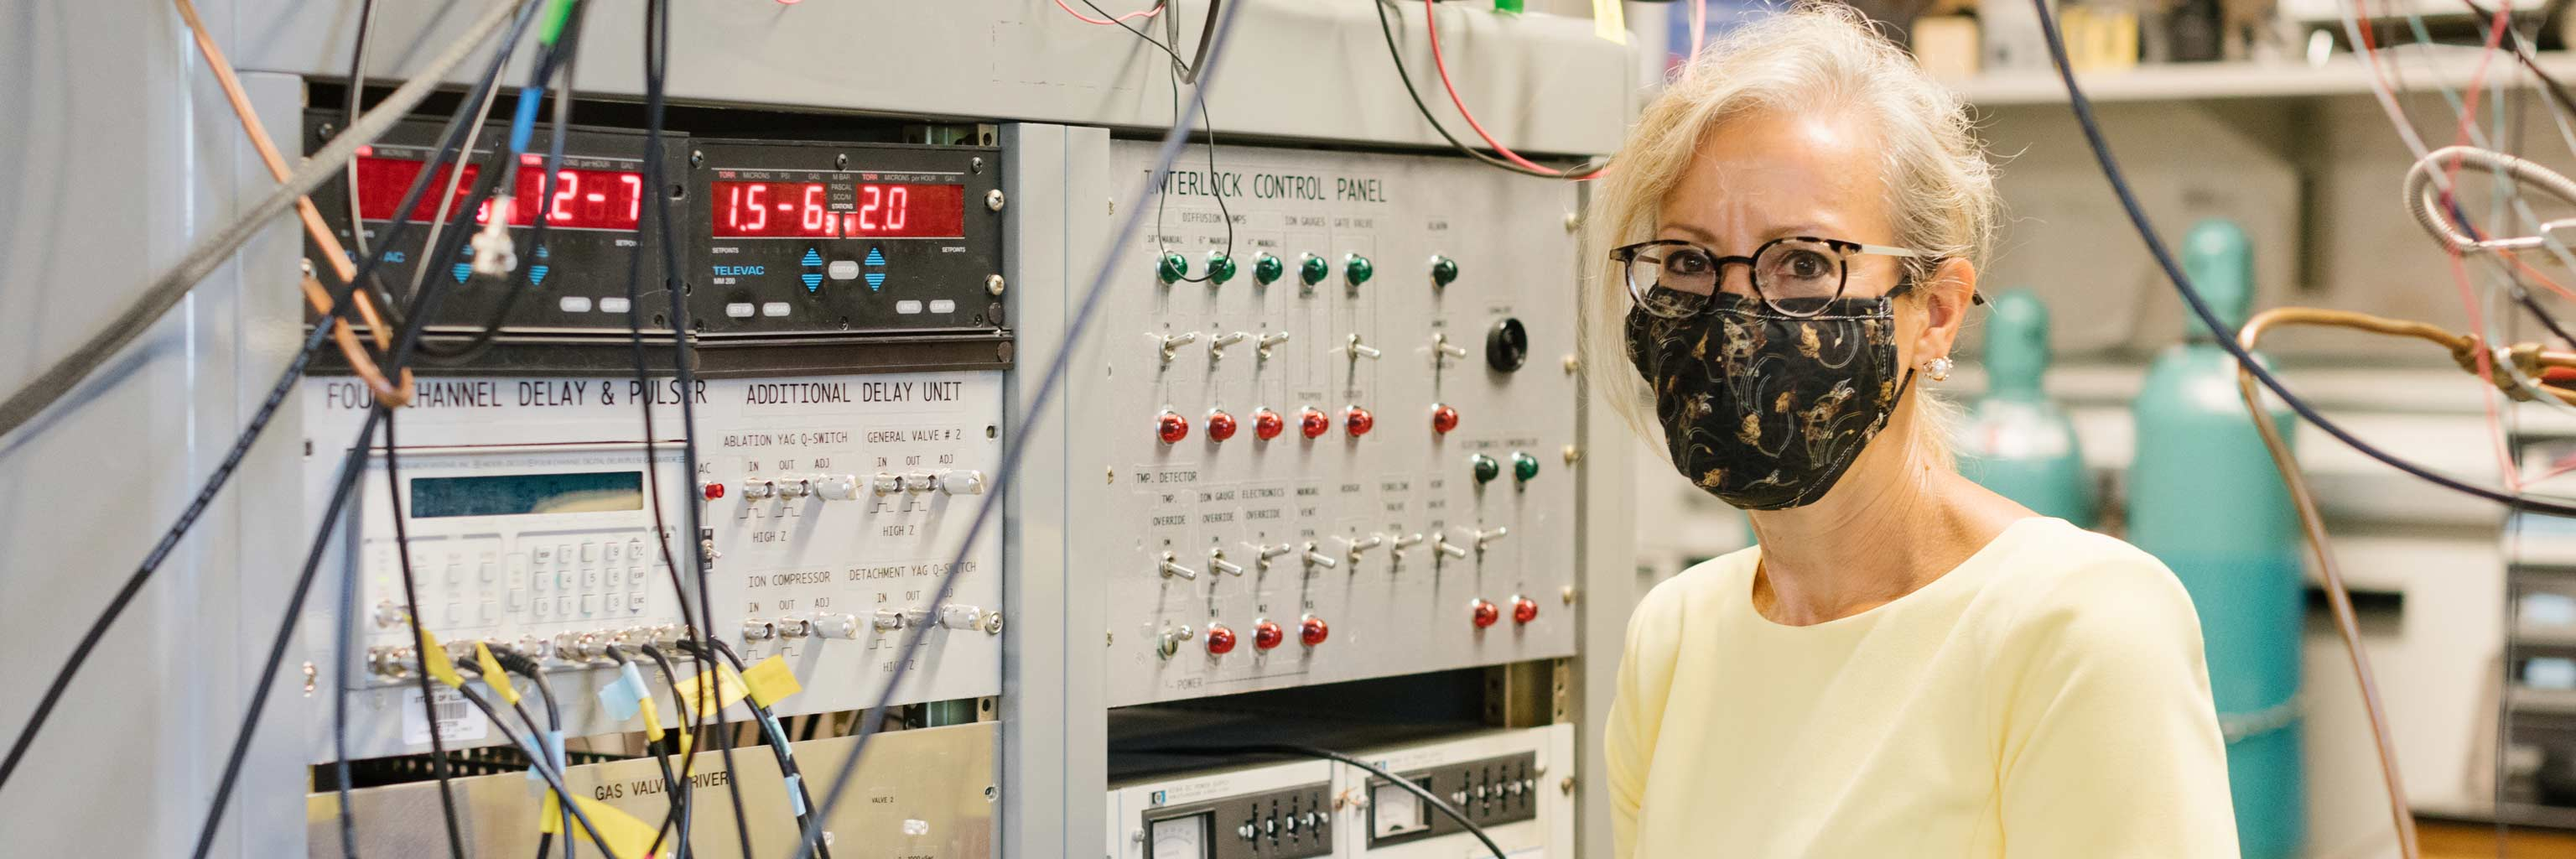 Caroline Jarrold in front of her chemistry equipment.